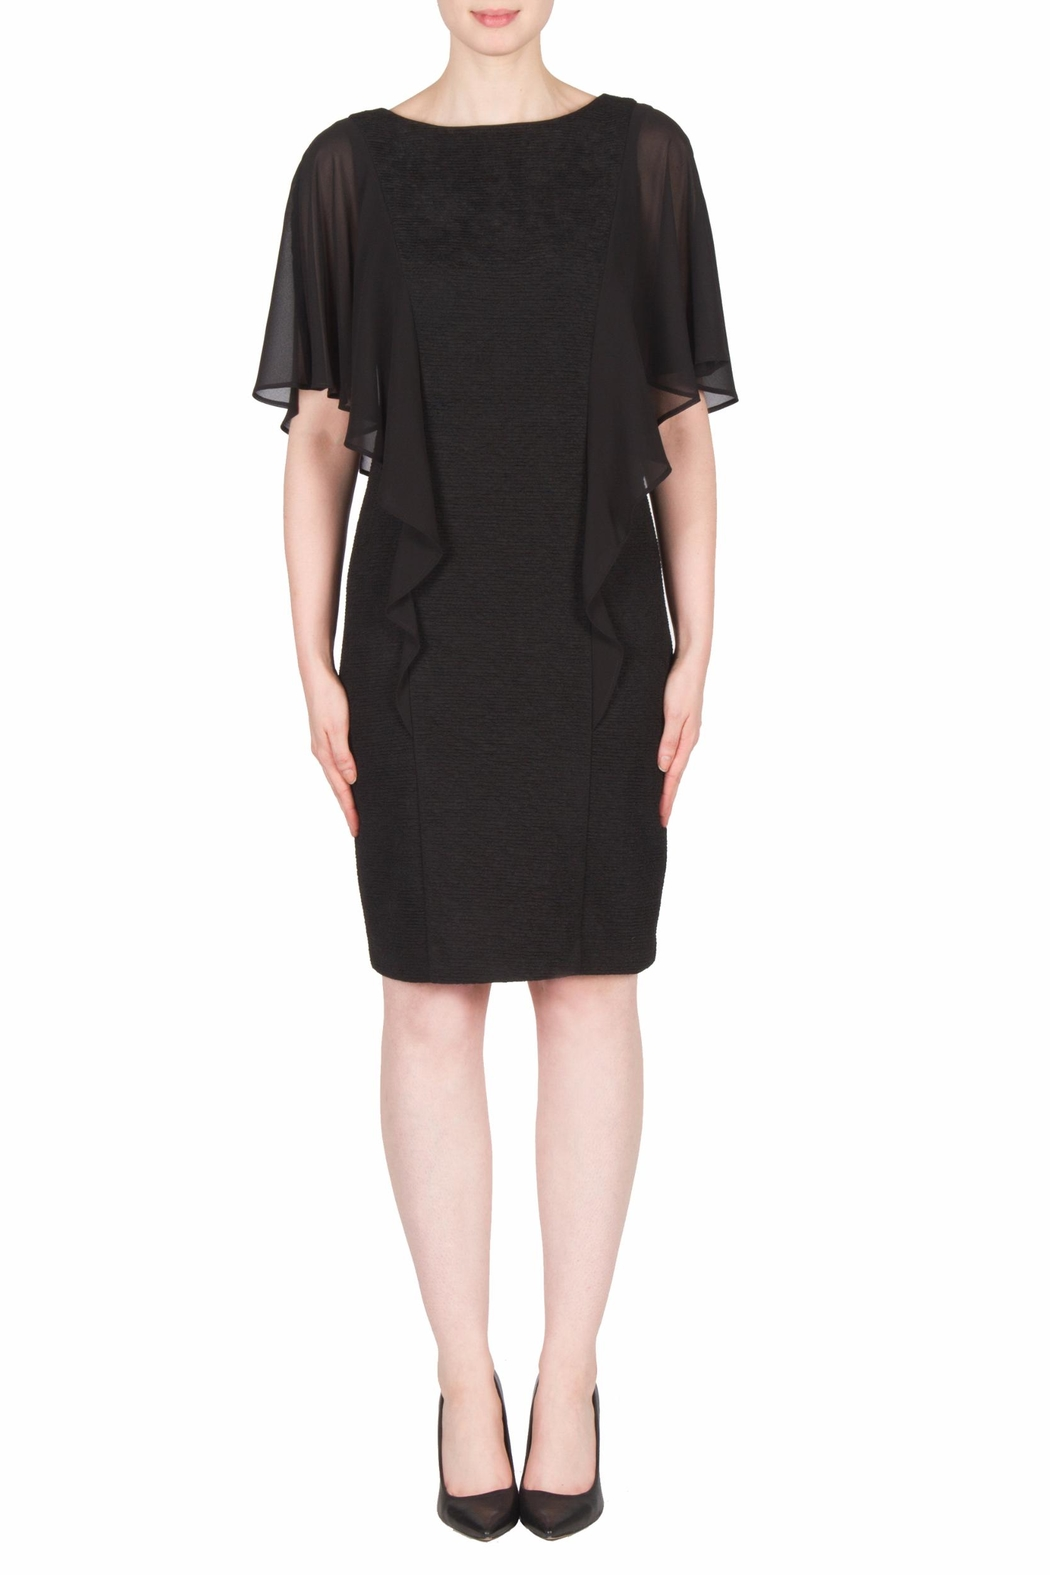 Joseph Ribkoff Ruffle Sleeve Dress - Front Cropped Image